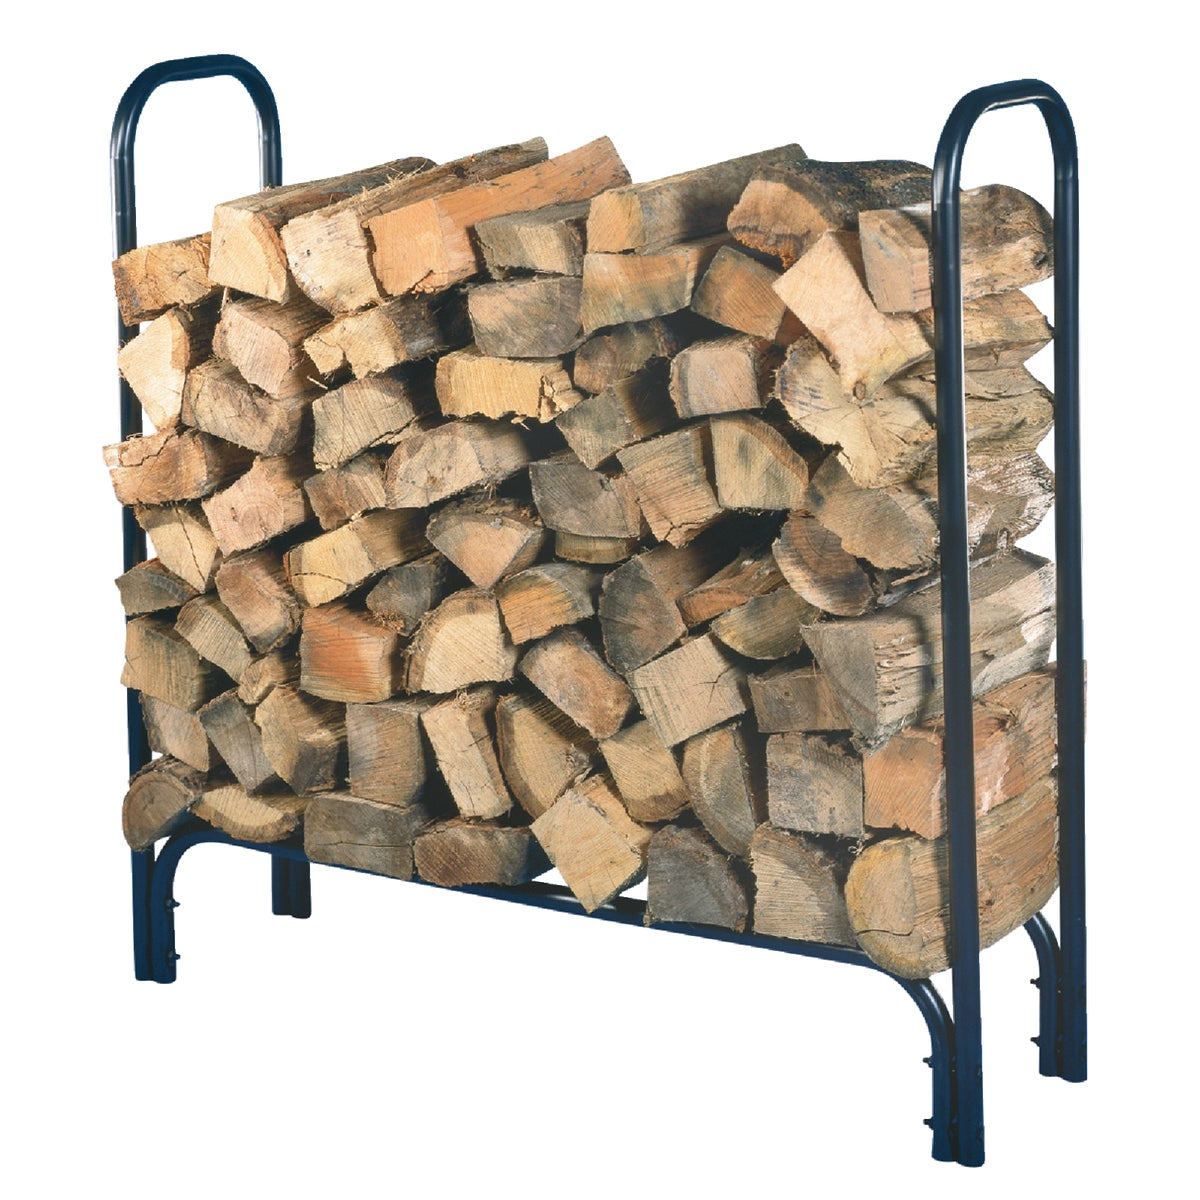 BLACK TUBE 4' LOG RACK